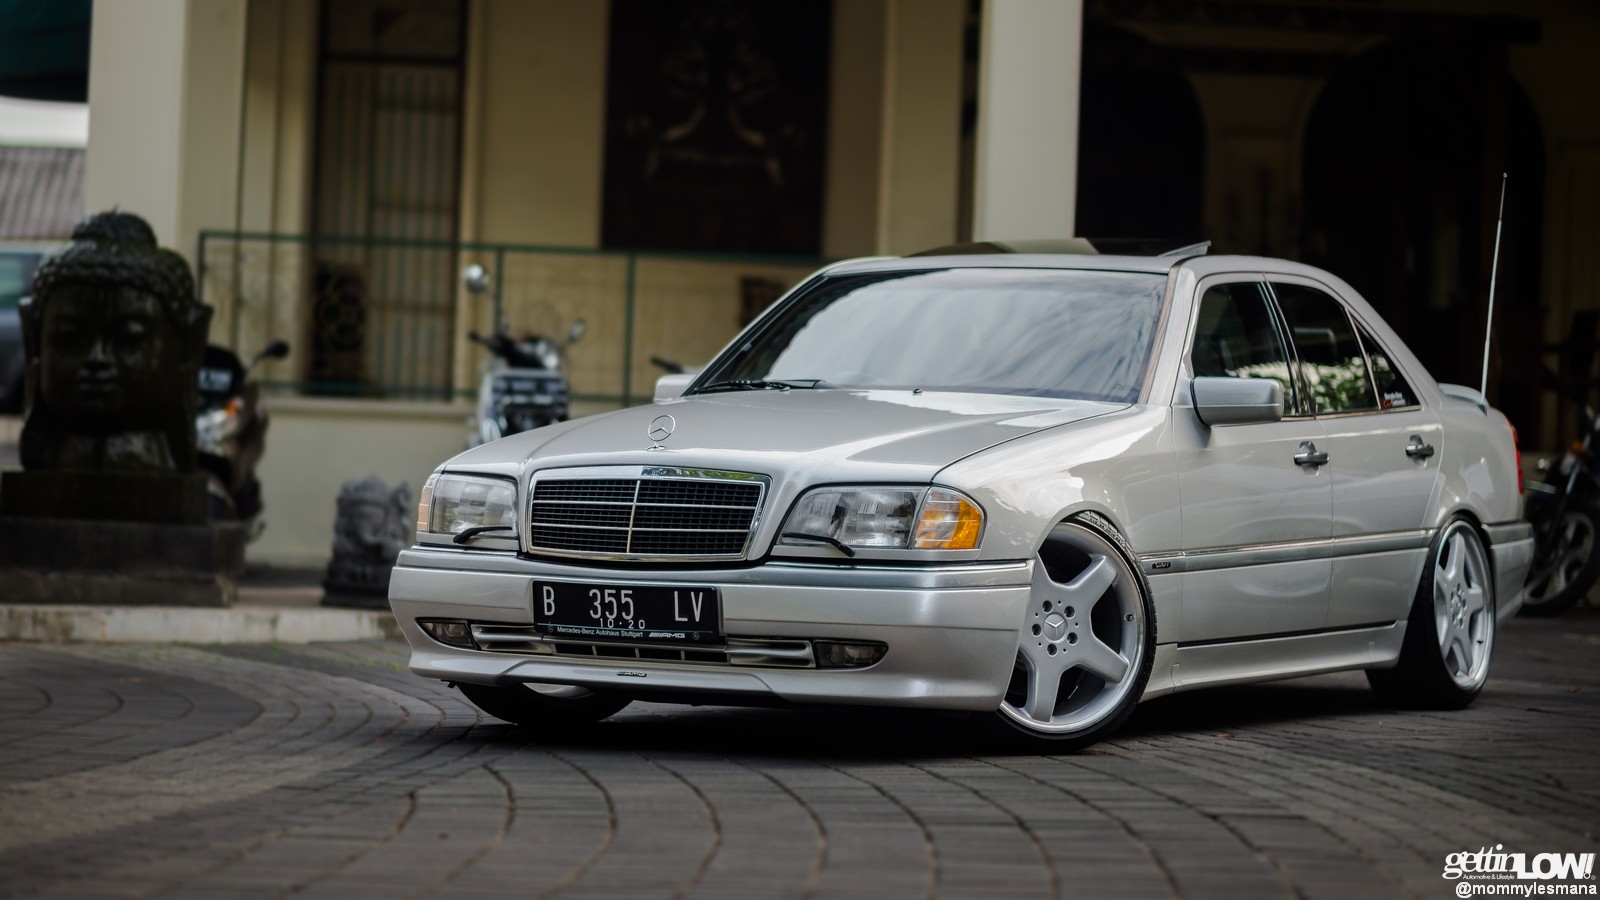 Trey's Mercedes-Benz W202